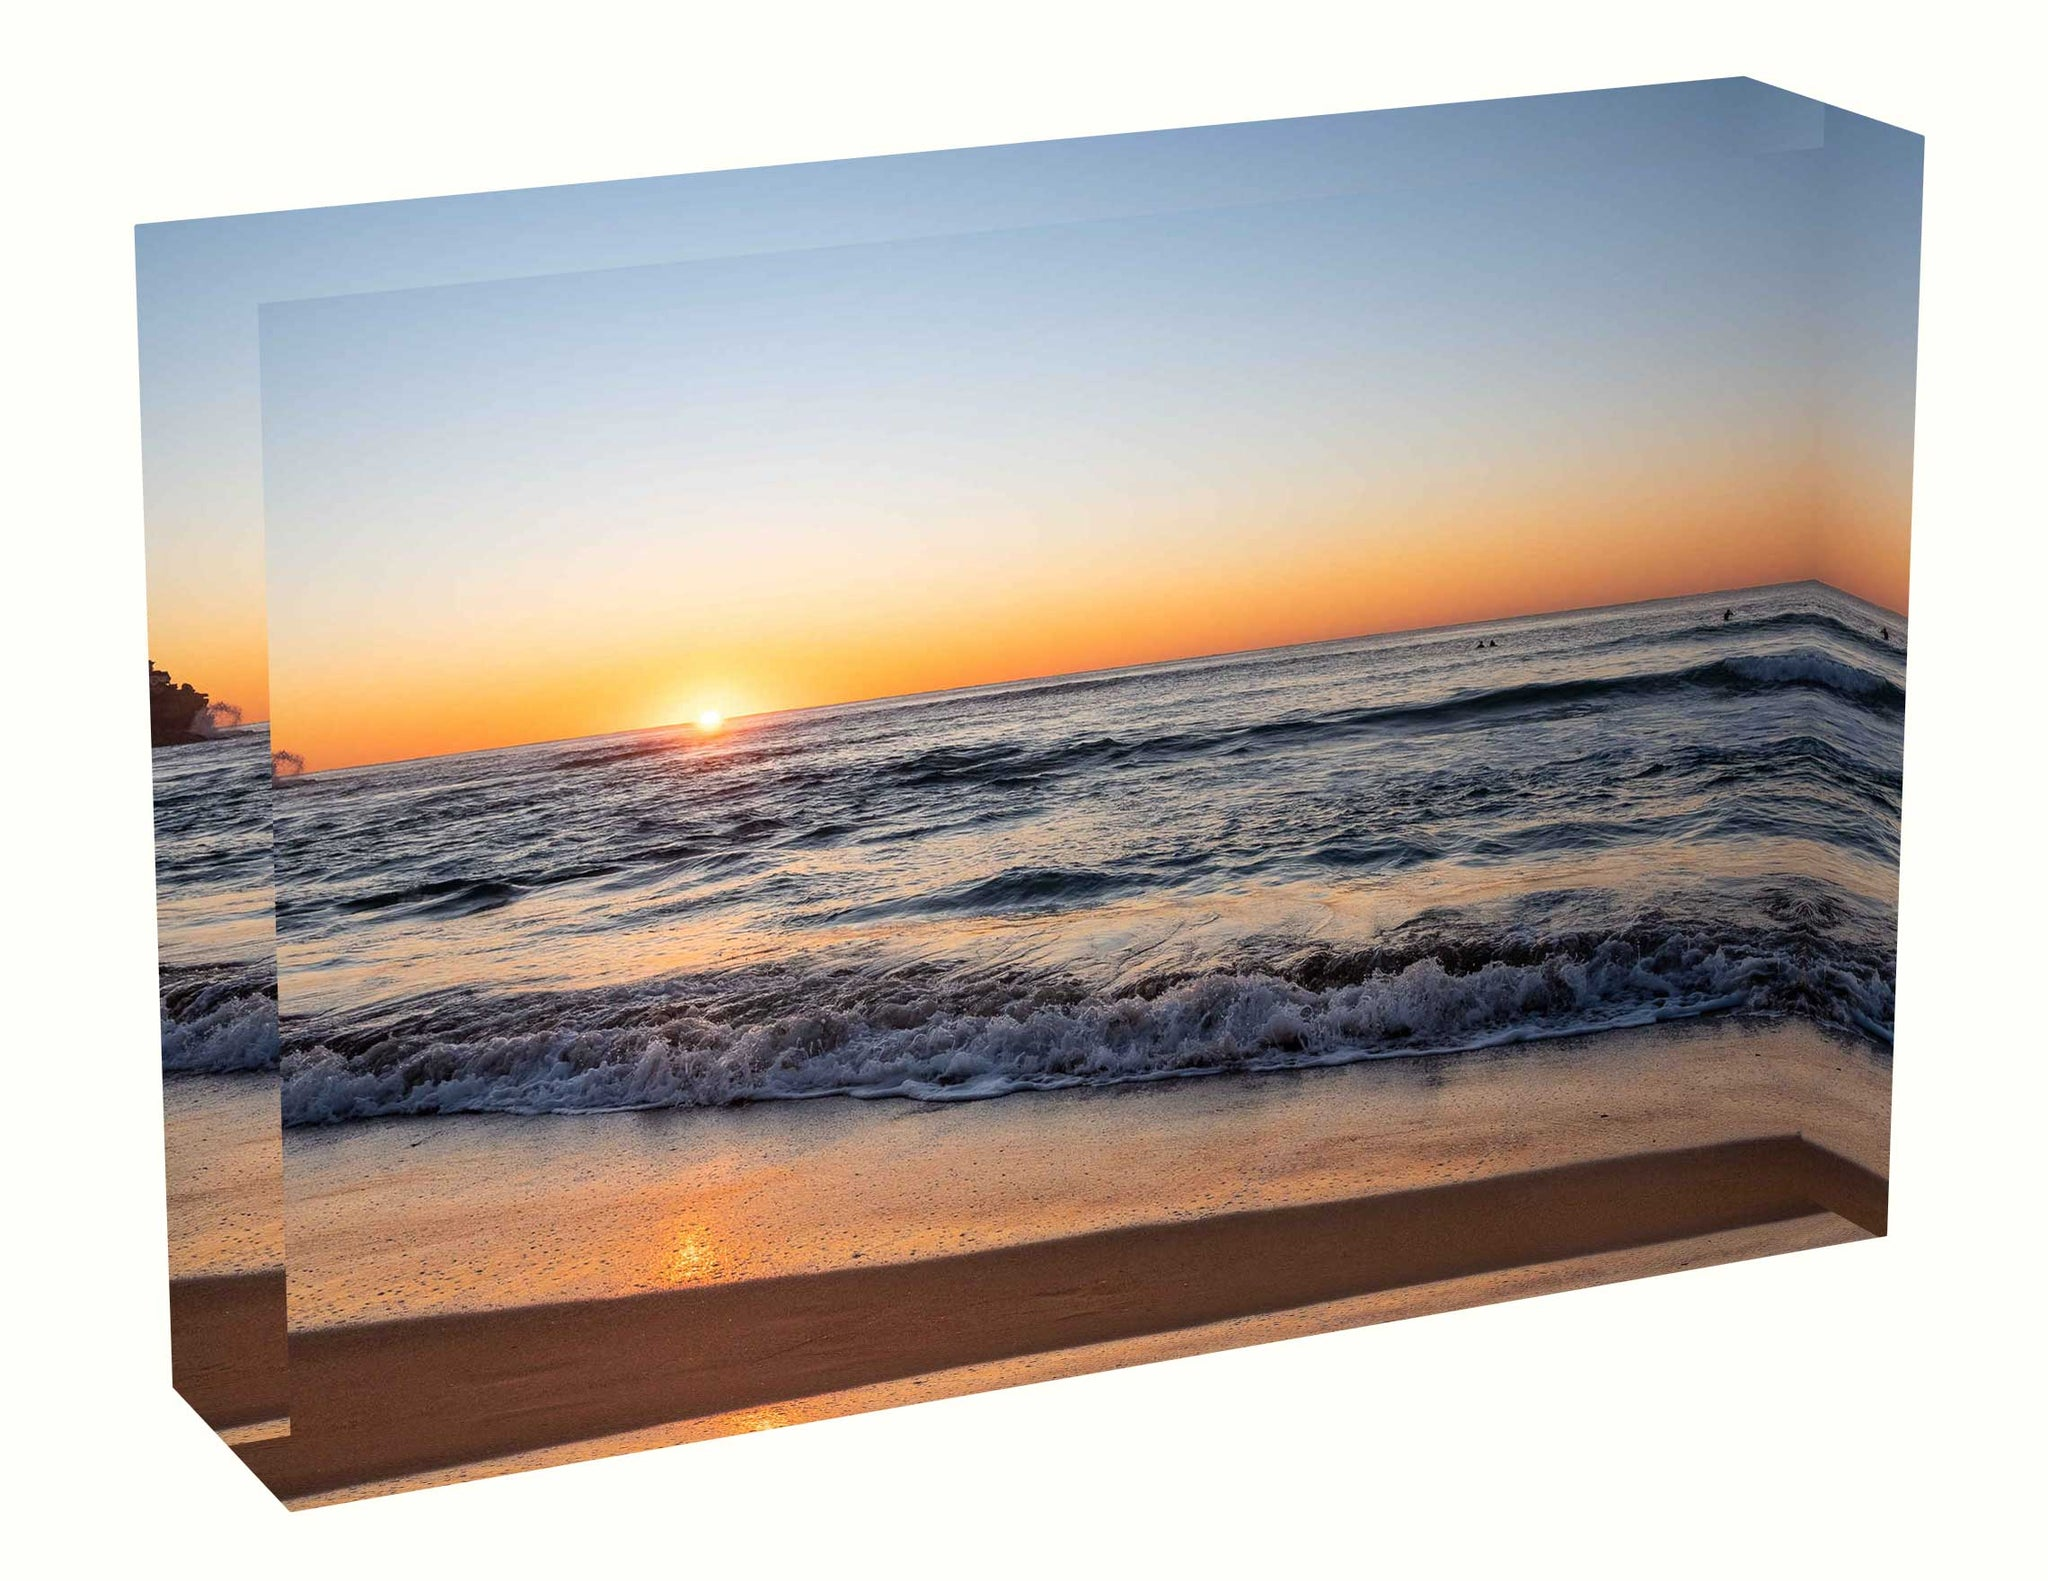 Acrylic block Sunrise photo from the 16th June 2020 at Queenscliff beach in Sydney